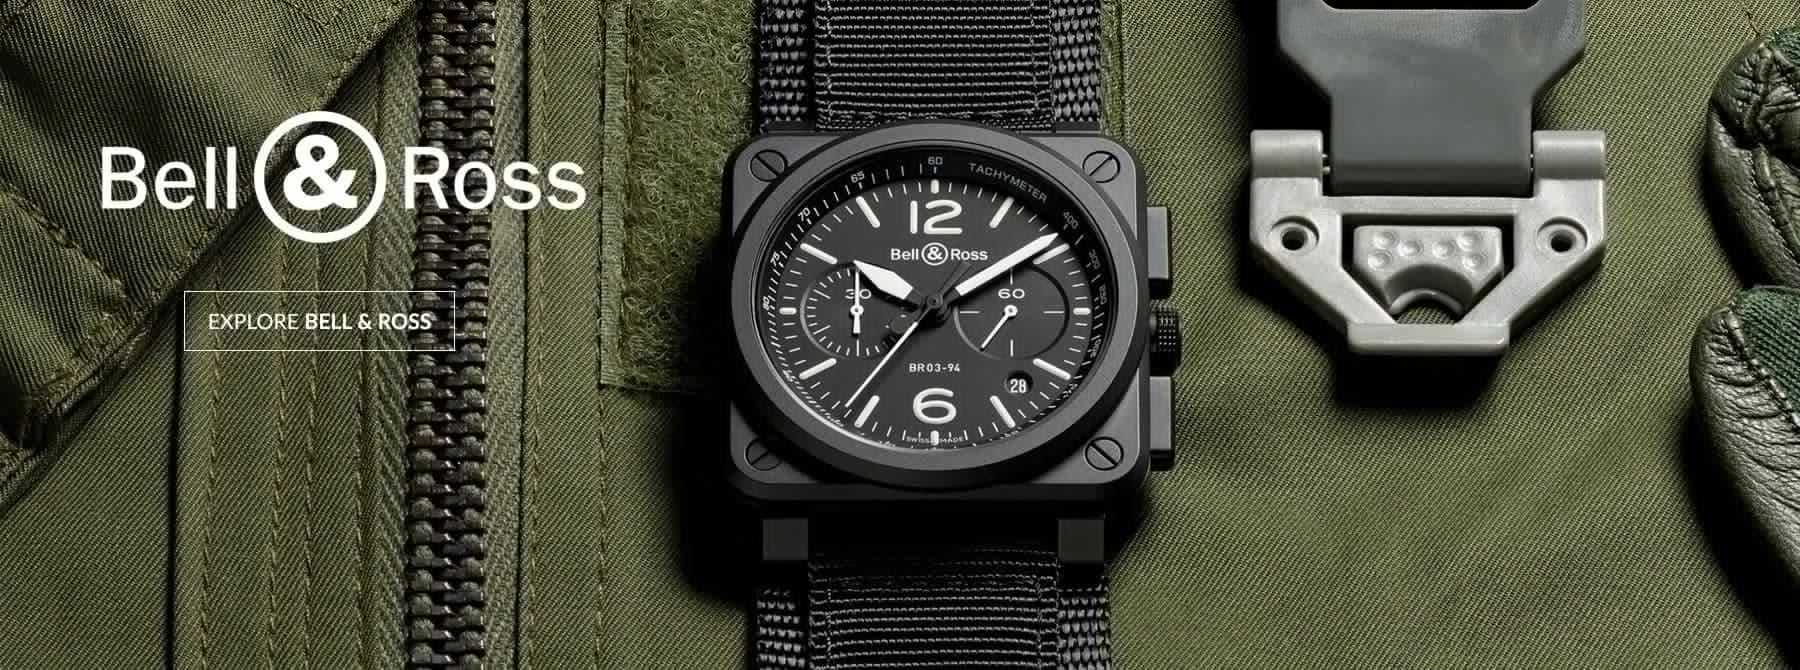 Bell & Ross Watches - Shop Now